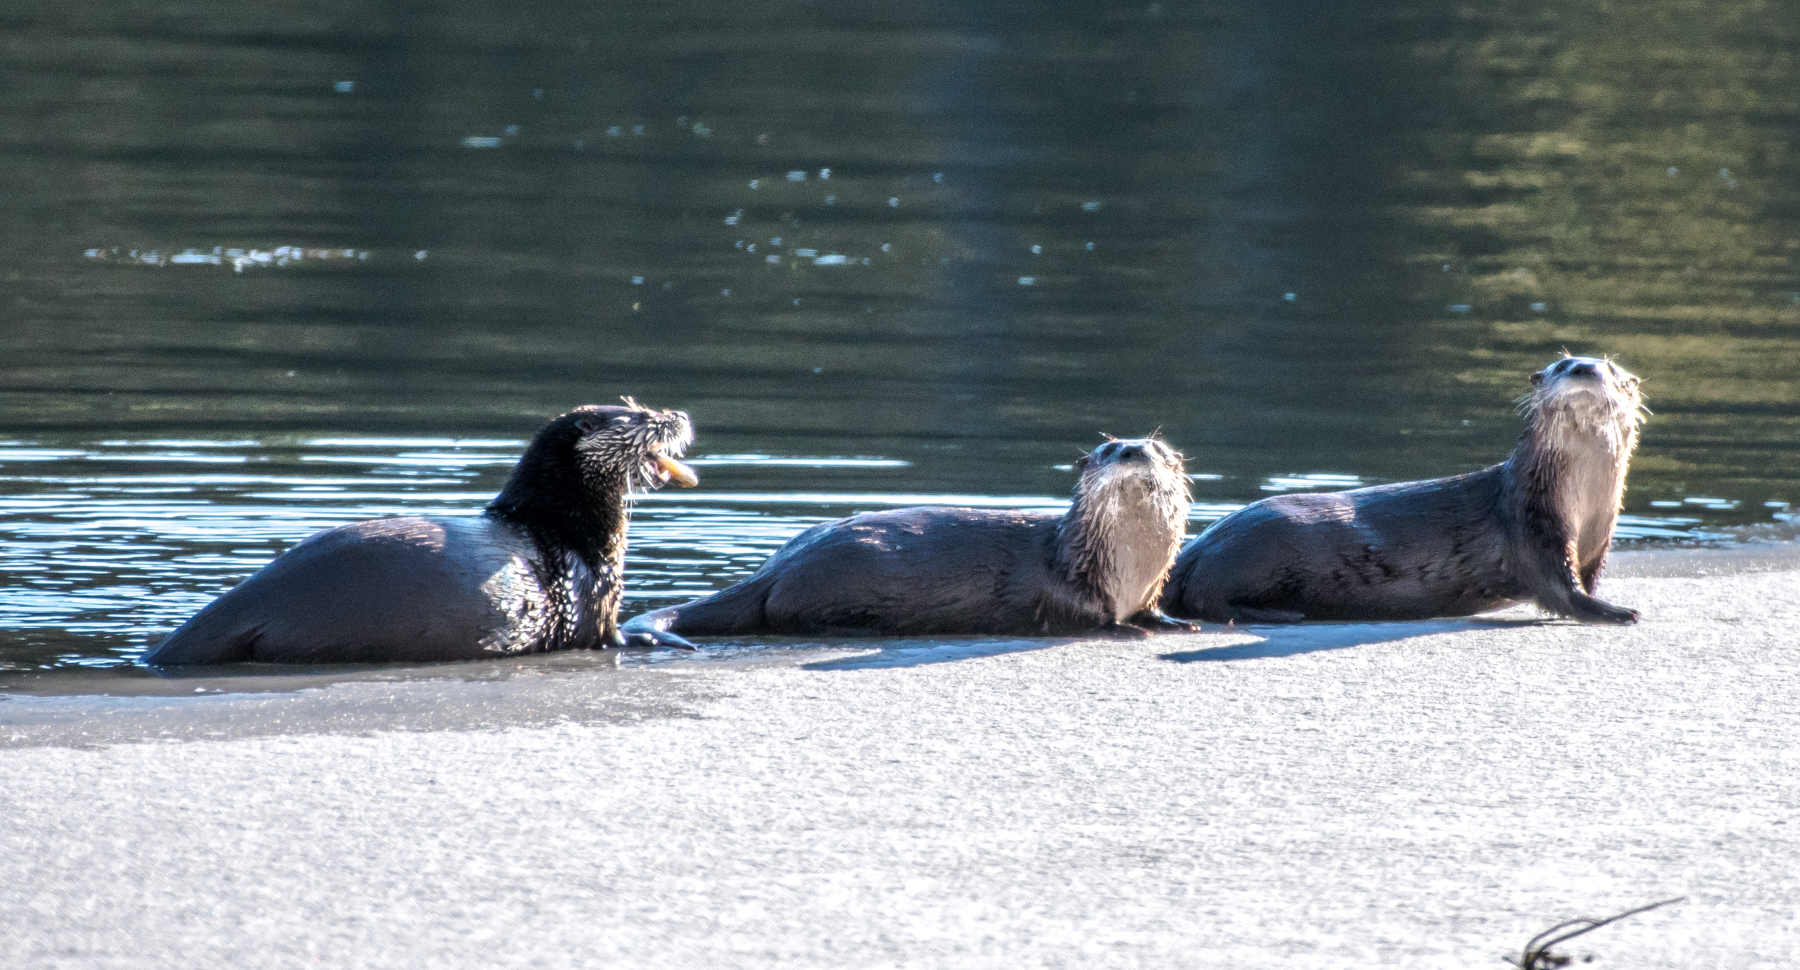 I stumbled upon 3 more otters out fishing and playing this morning.